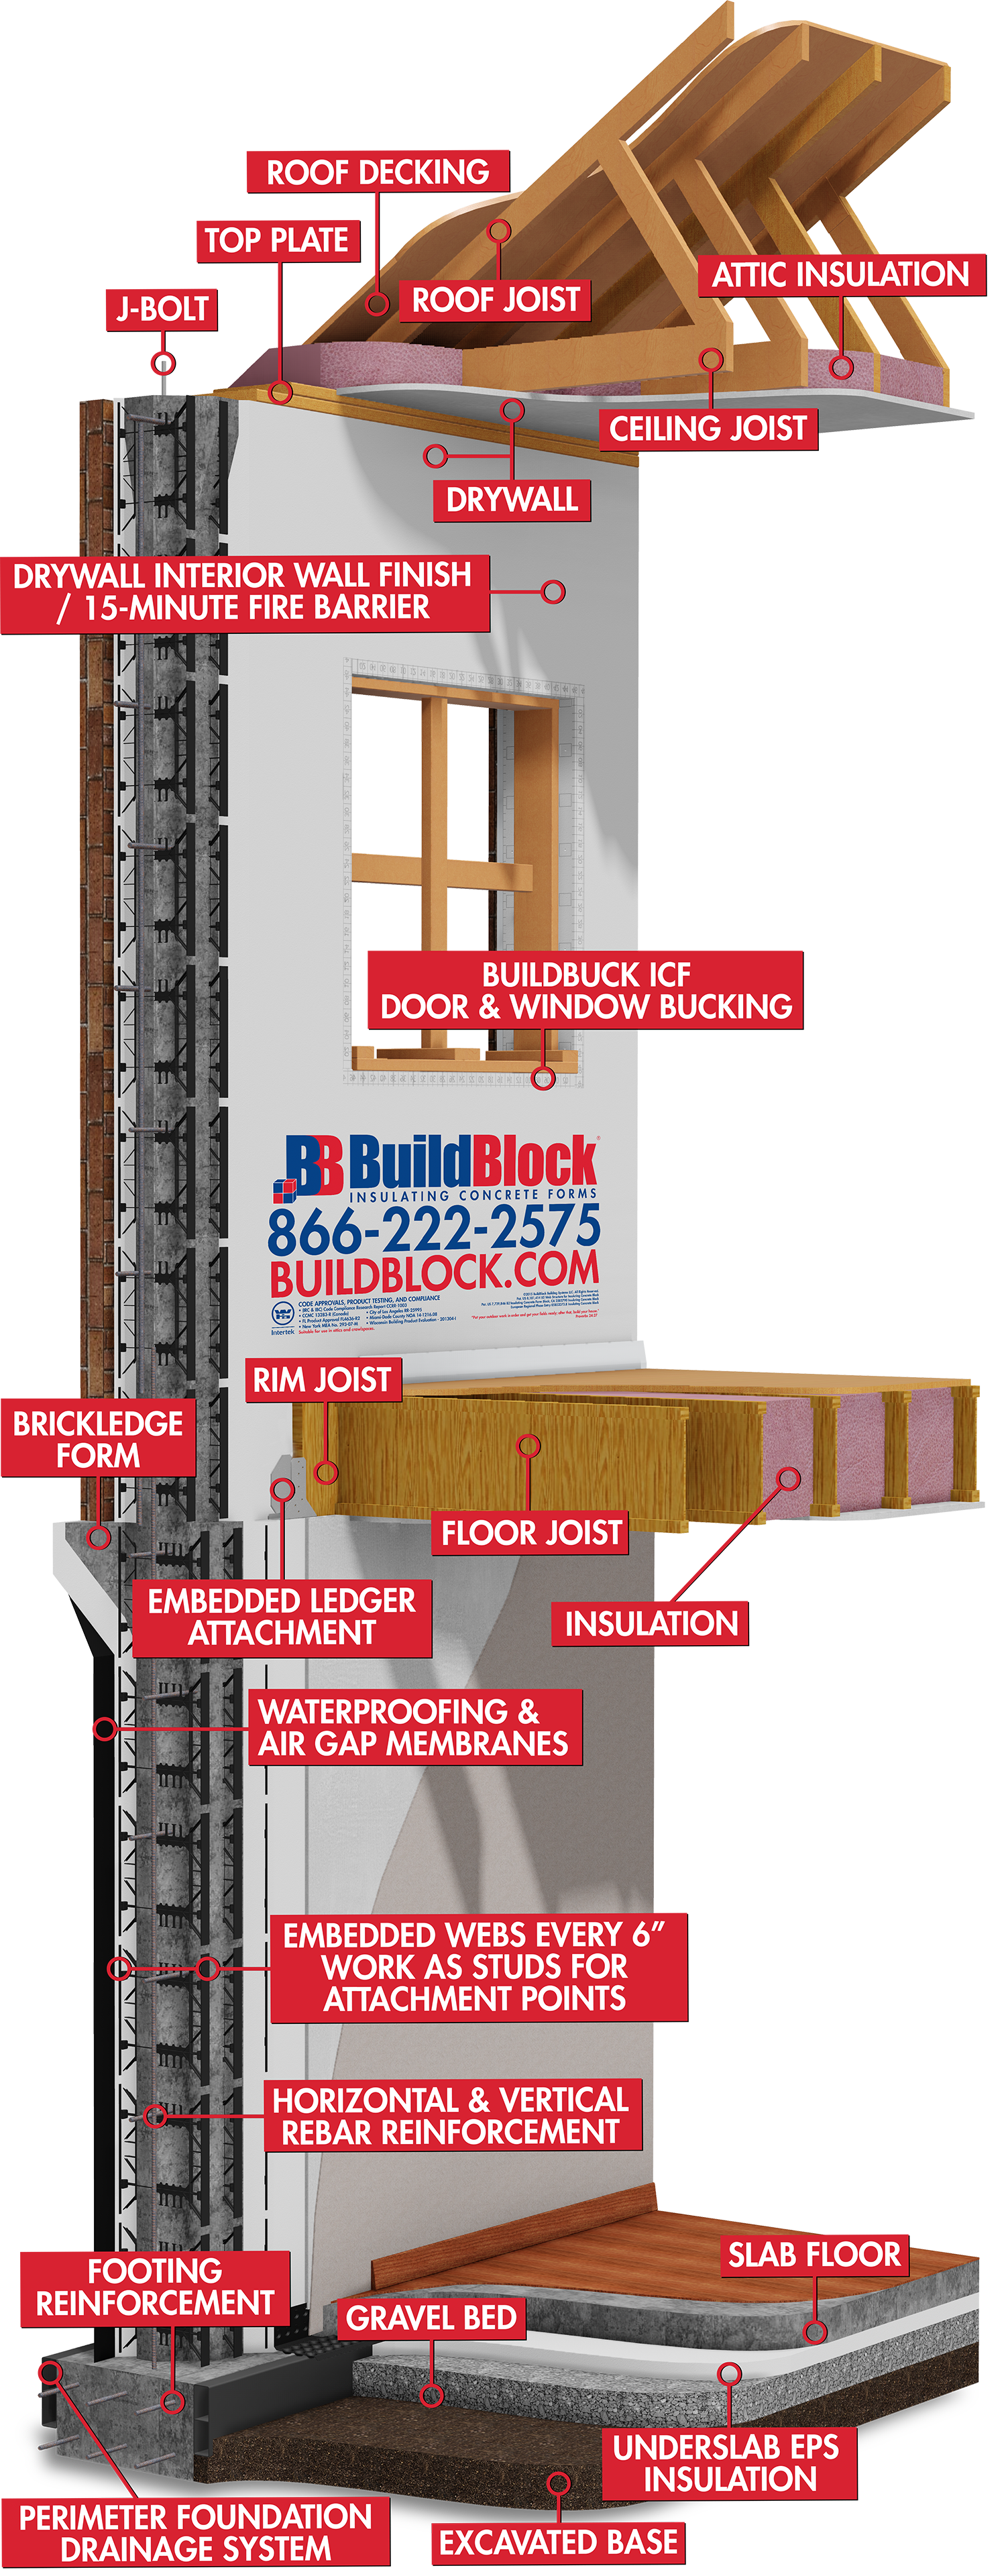 ICFs for Home Buyers - Thank you for considering BuildBlock Insulating Concrete Forms (ICFs) for your new home! ICFs deliver the strength of concrete with comfort and safety in mind.As you begin formulating the plans for your new home, there seems to be no end to the number of choices you have to make. It's natural to pour hours of time and effort into choosing the right paint, wall coverings, exterior finish and other aesthetics for your new home. But first take some time to decide what will be inside those walls.Traditional wood-frame construction can't compare to the safety, permanence, and energy efficiency of walls built with insulating concrete forms. To learn the many benefits of an ICF home, start in our Why ICFs section.